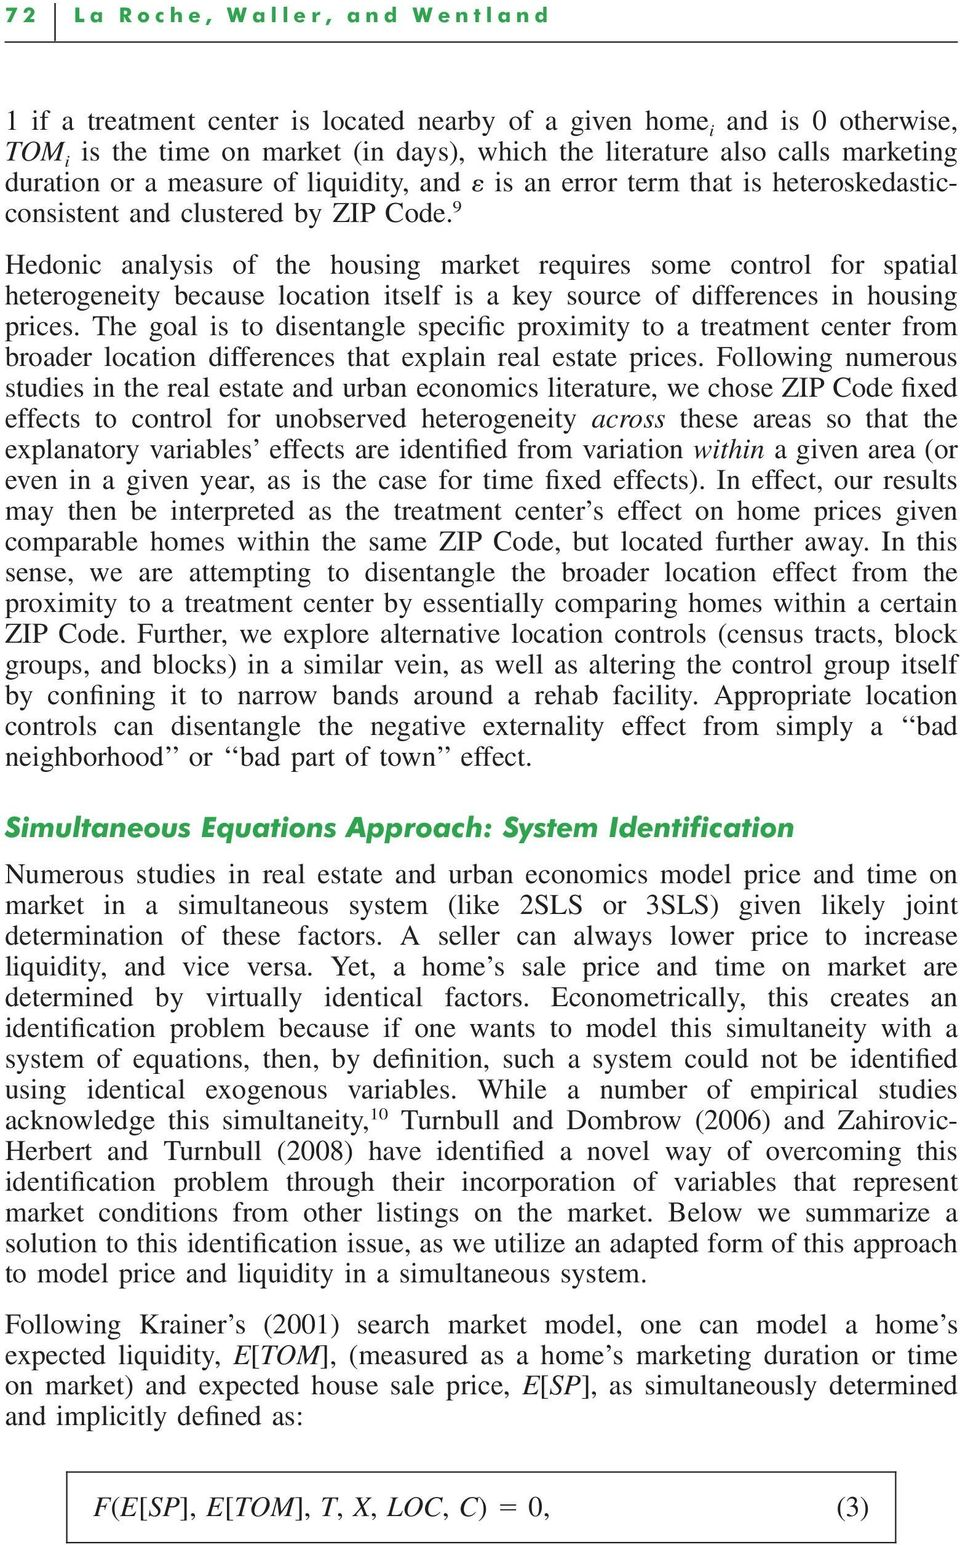 9 Hedonic analysis of the housing market requires some control for spatial heterogeneity because location itself is a key source of differences in housing prices.